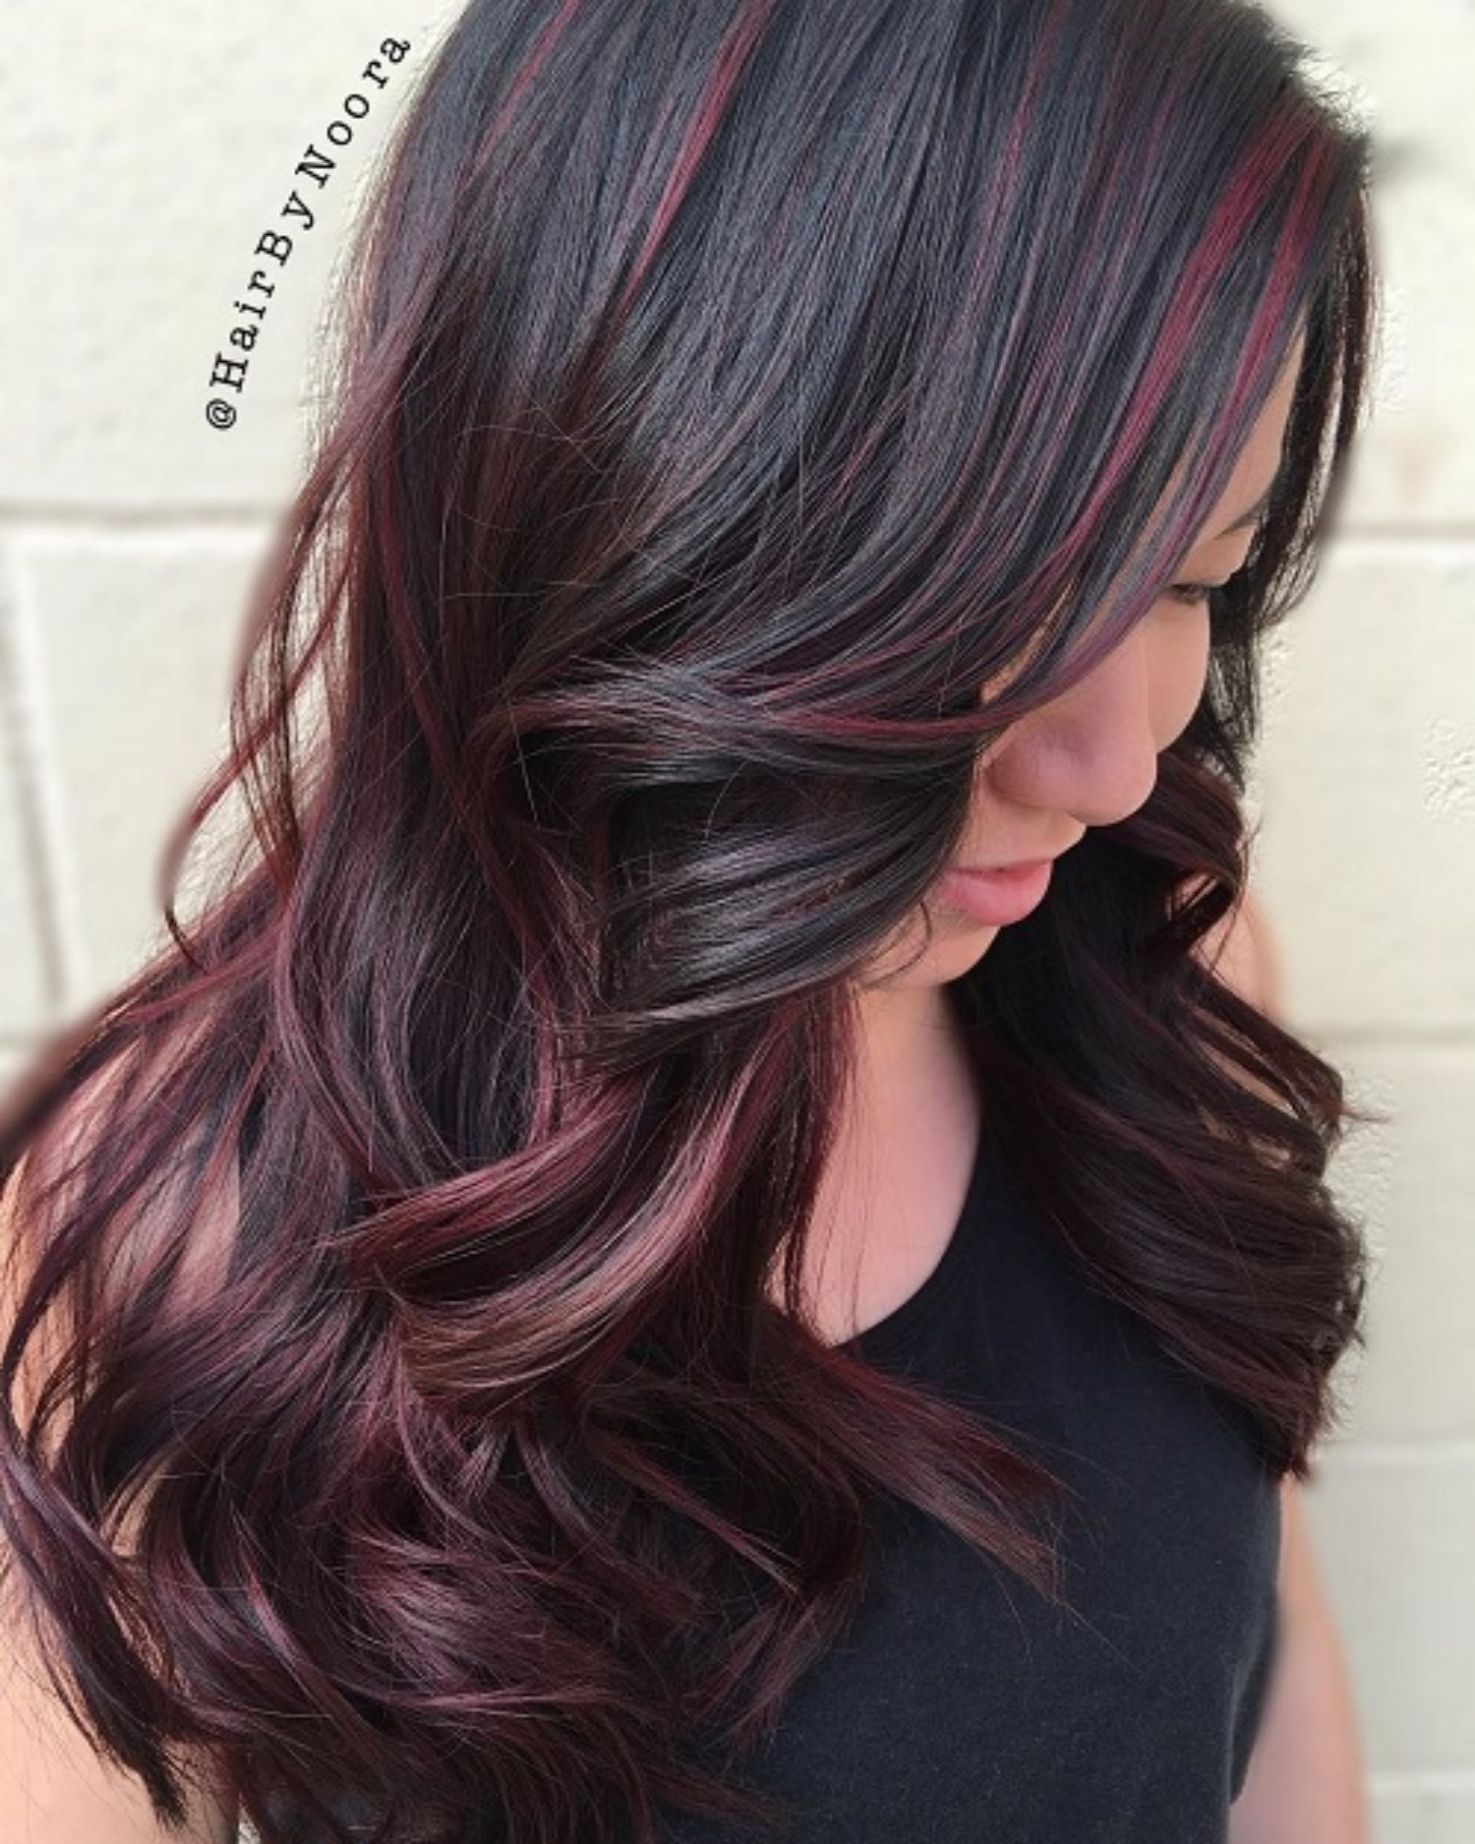 60 Hairstyles Featuring Dark Brown Hair With Highlights Hair Highlights Brown Hair With Highlights Burgundy Brown Hair